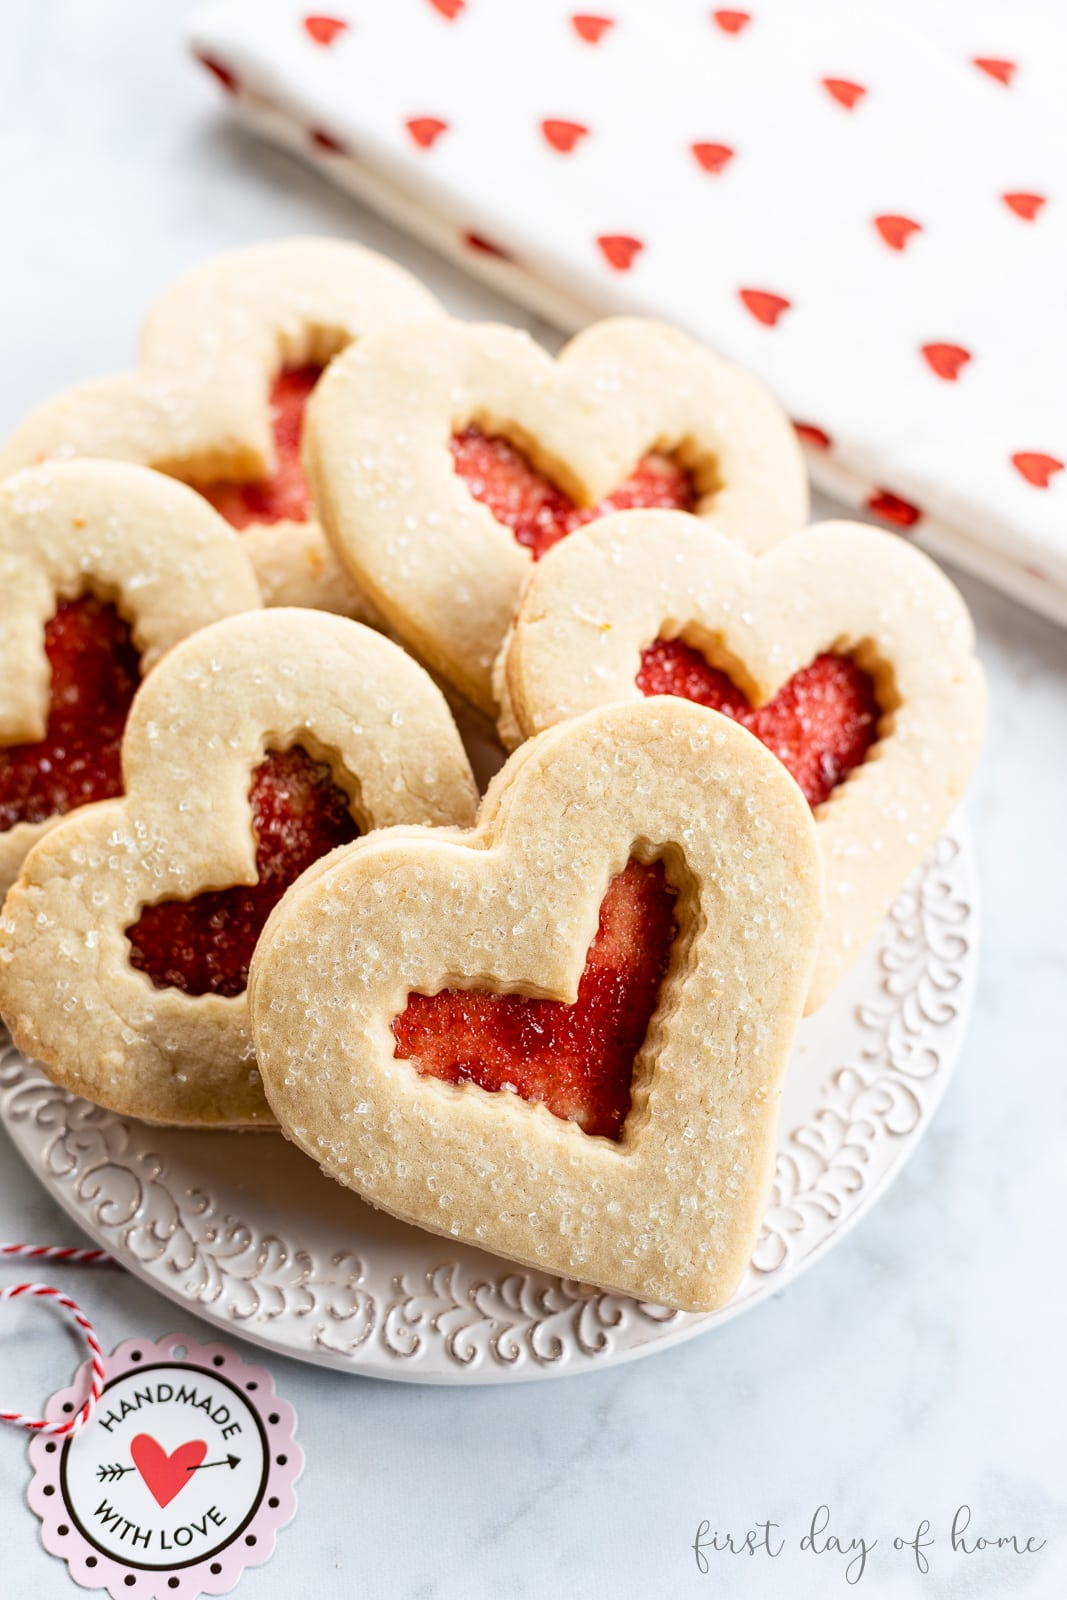 Heart shaped sugar cookies with jelly filling and tea towel with gift tag